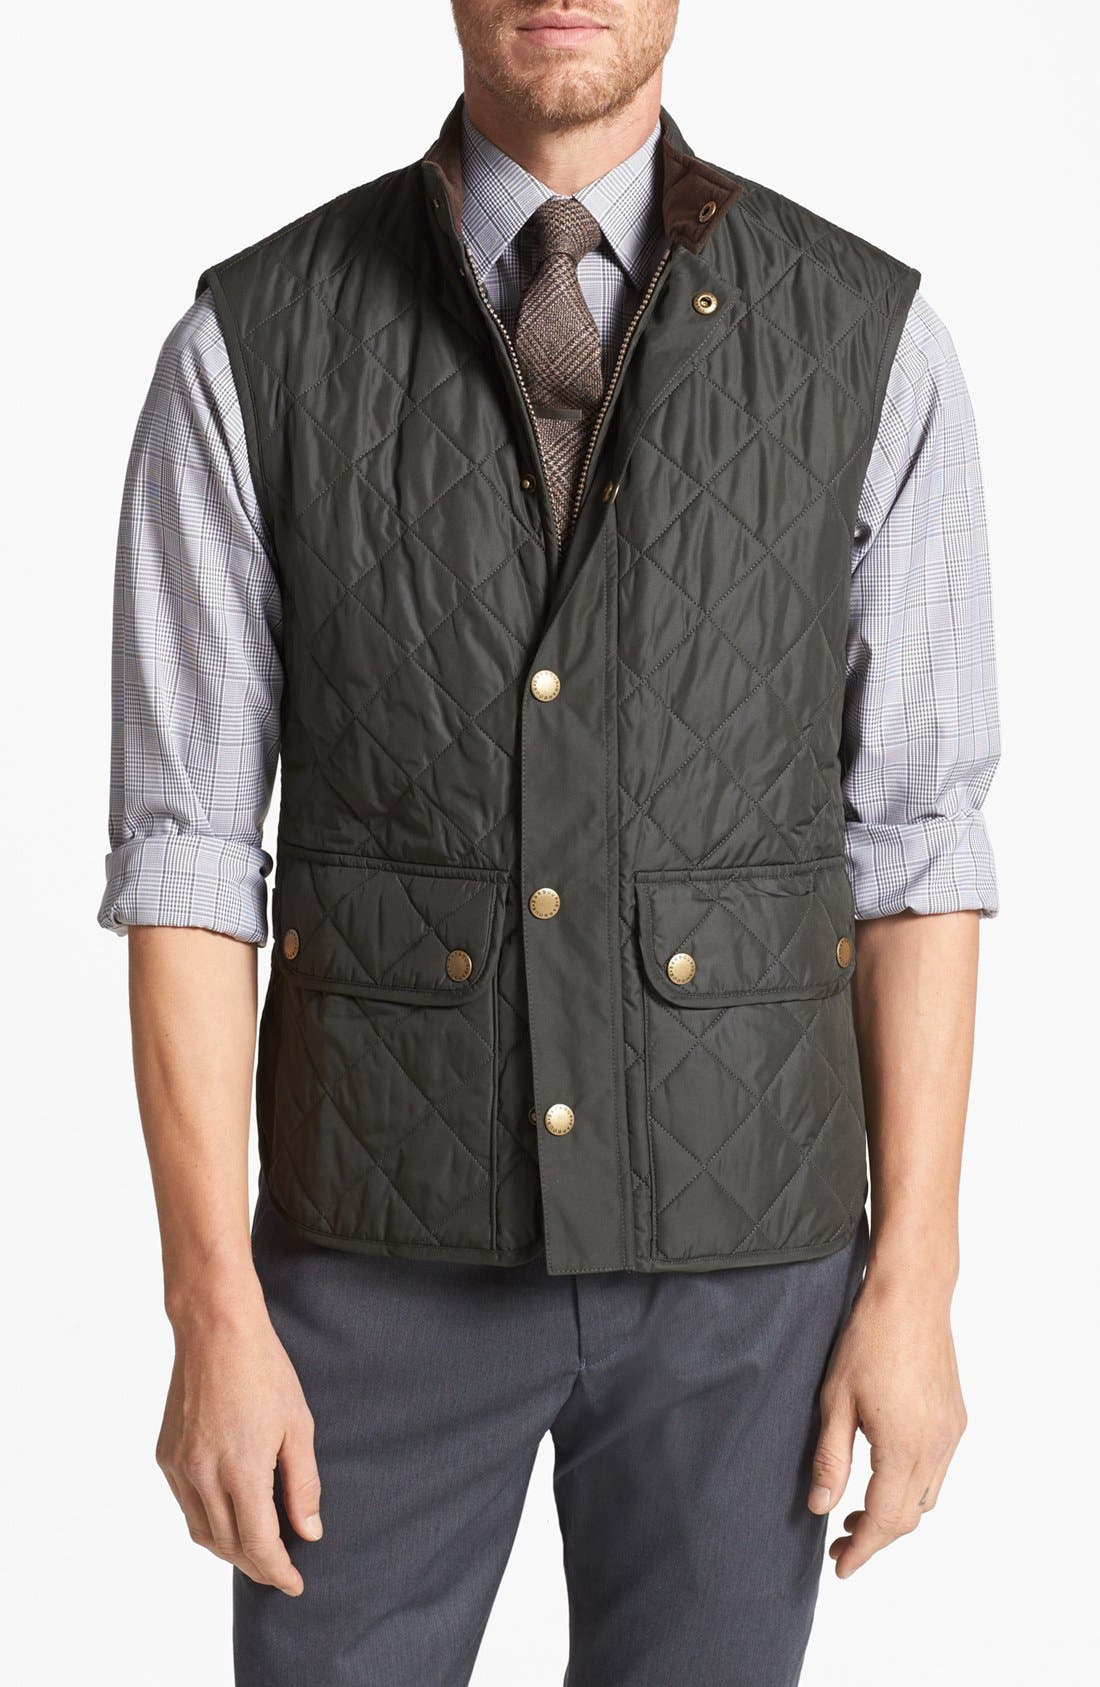 Barbour 'Lowerdale' Trim Fit Quilted Vest | Nordstrom : quilted vests for men - Adamdwight.com